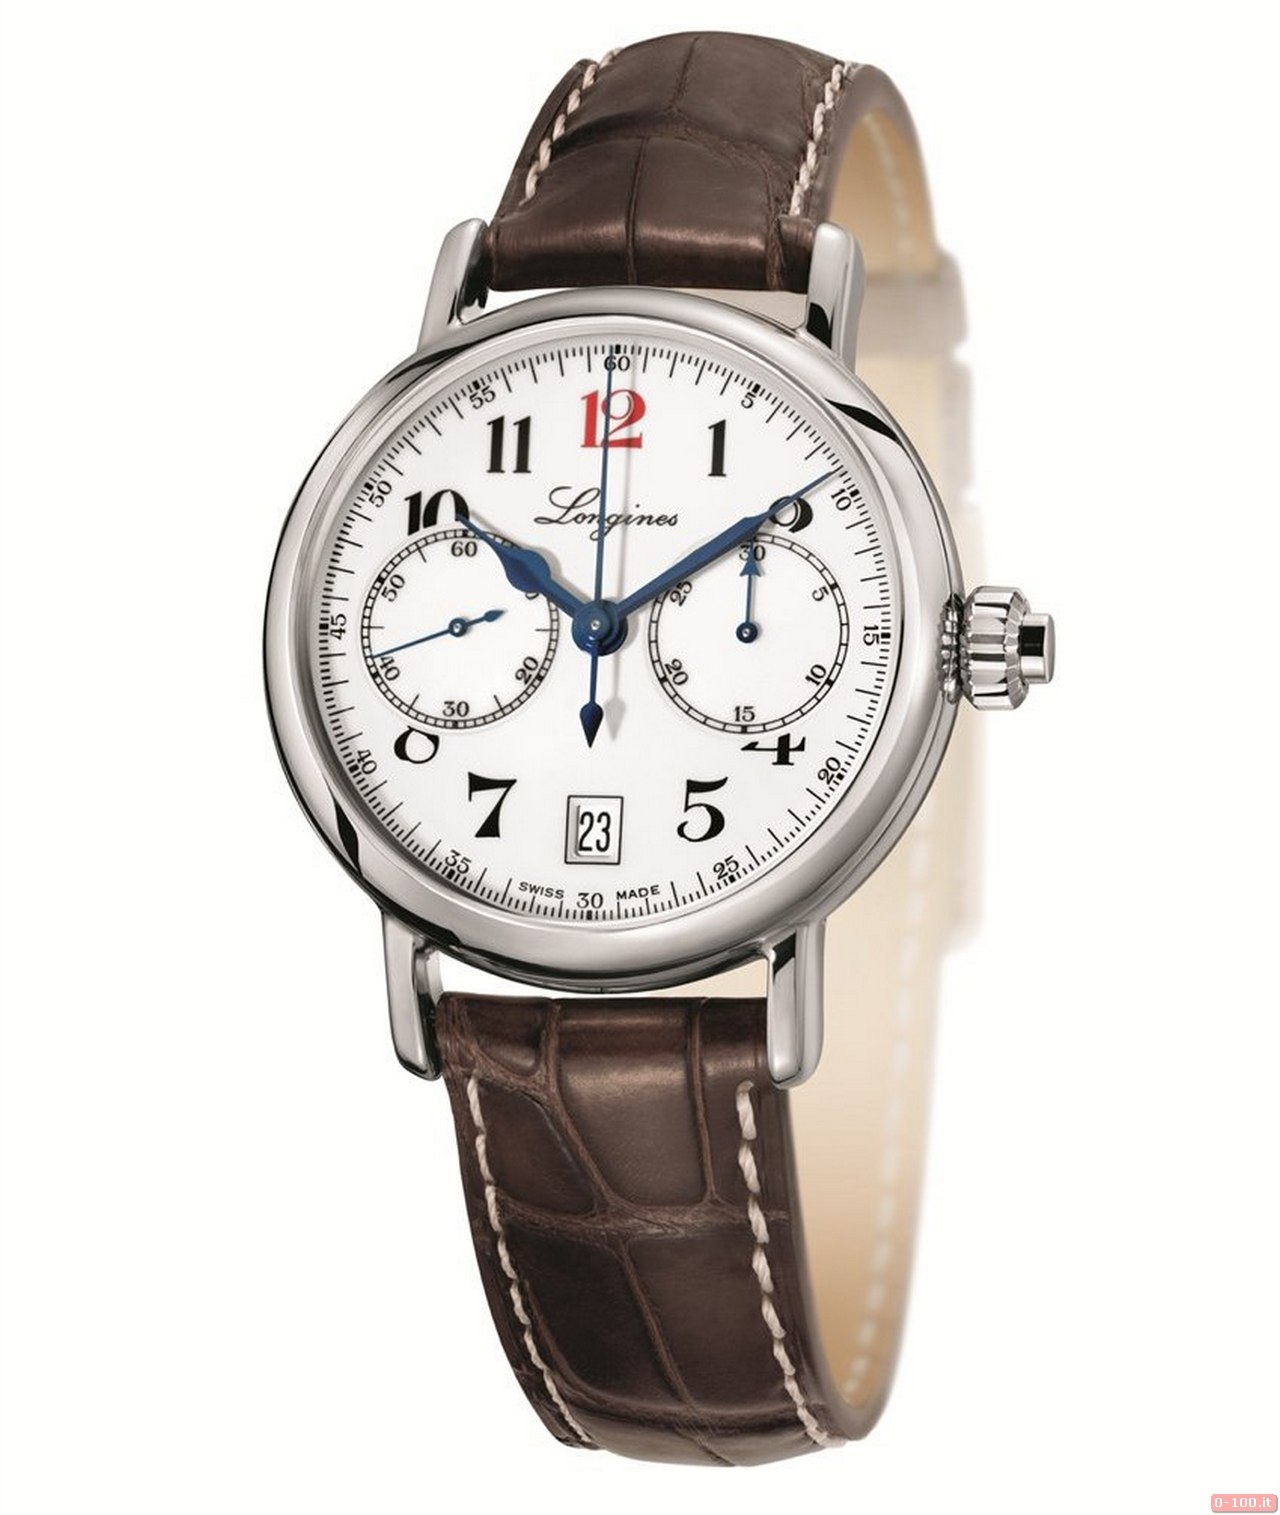 anteprima-baselworld-2014-longines-column-wheel-single-push-piece-chronograph_0-1005